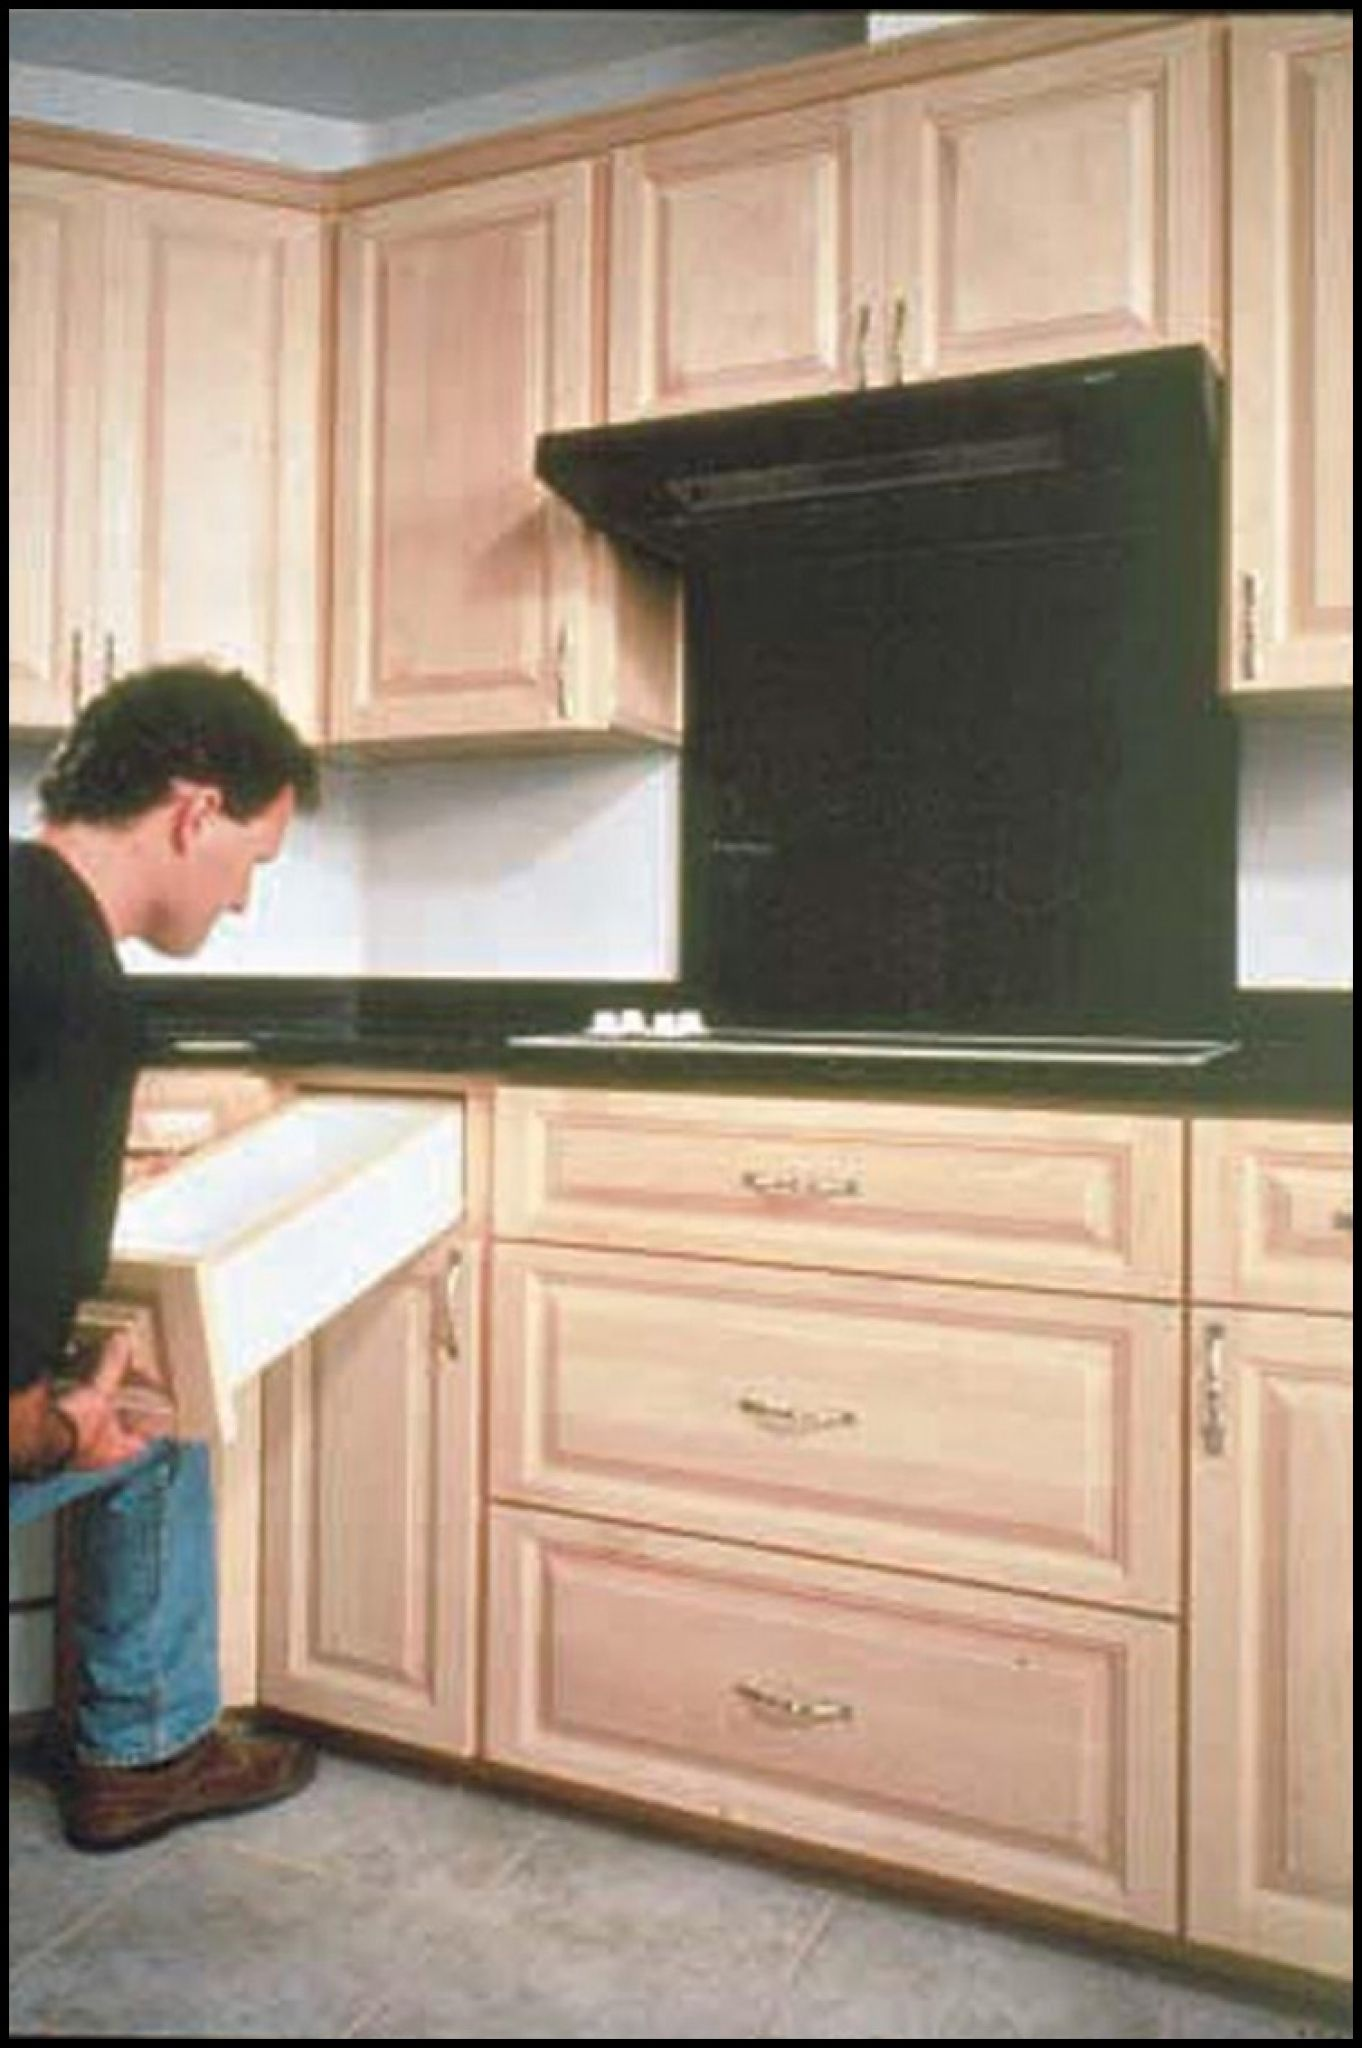 canac kitchen cabinets for sale - kitchen counter top ideas Check ...